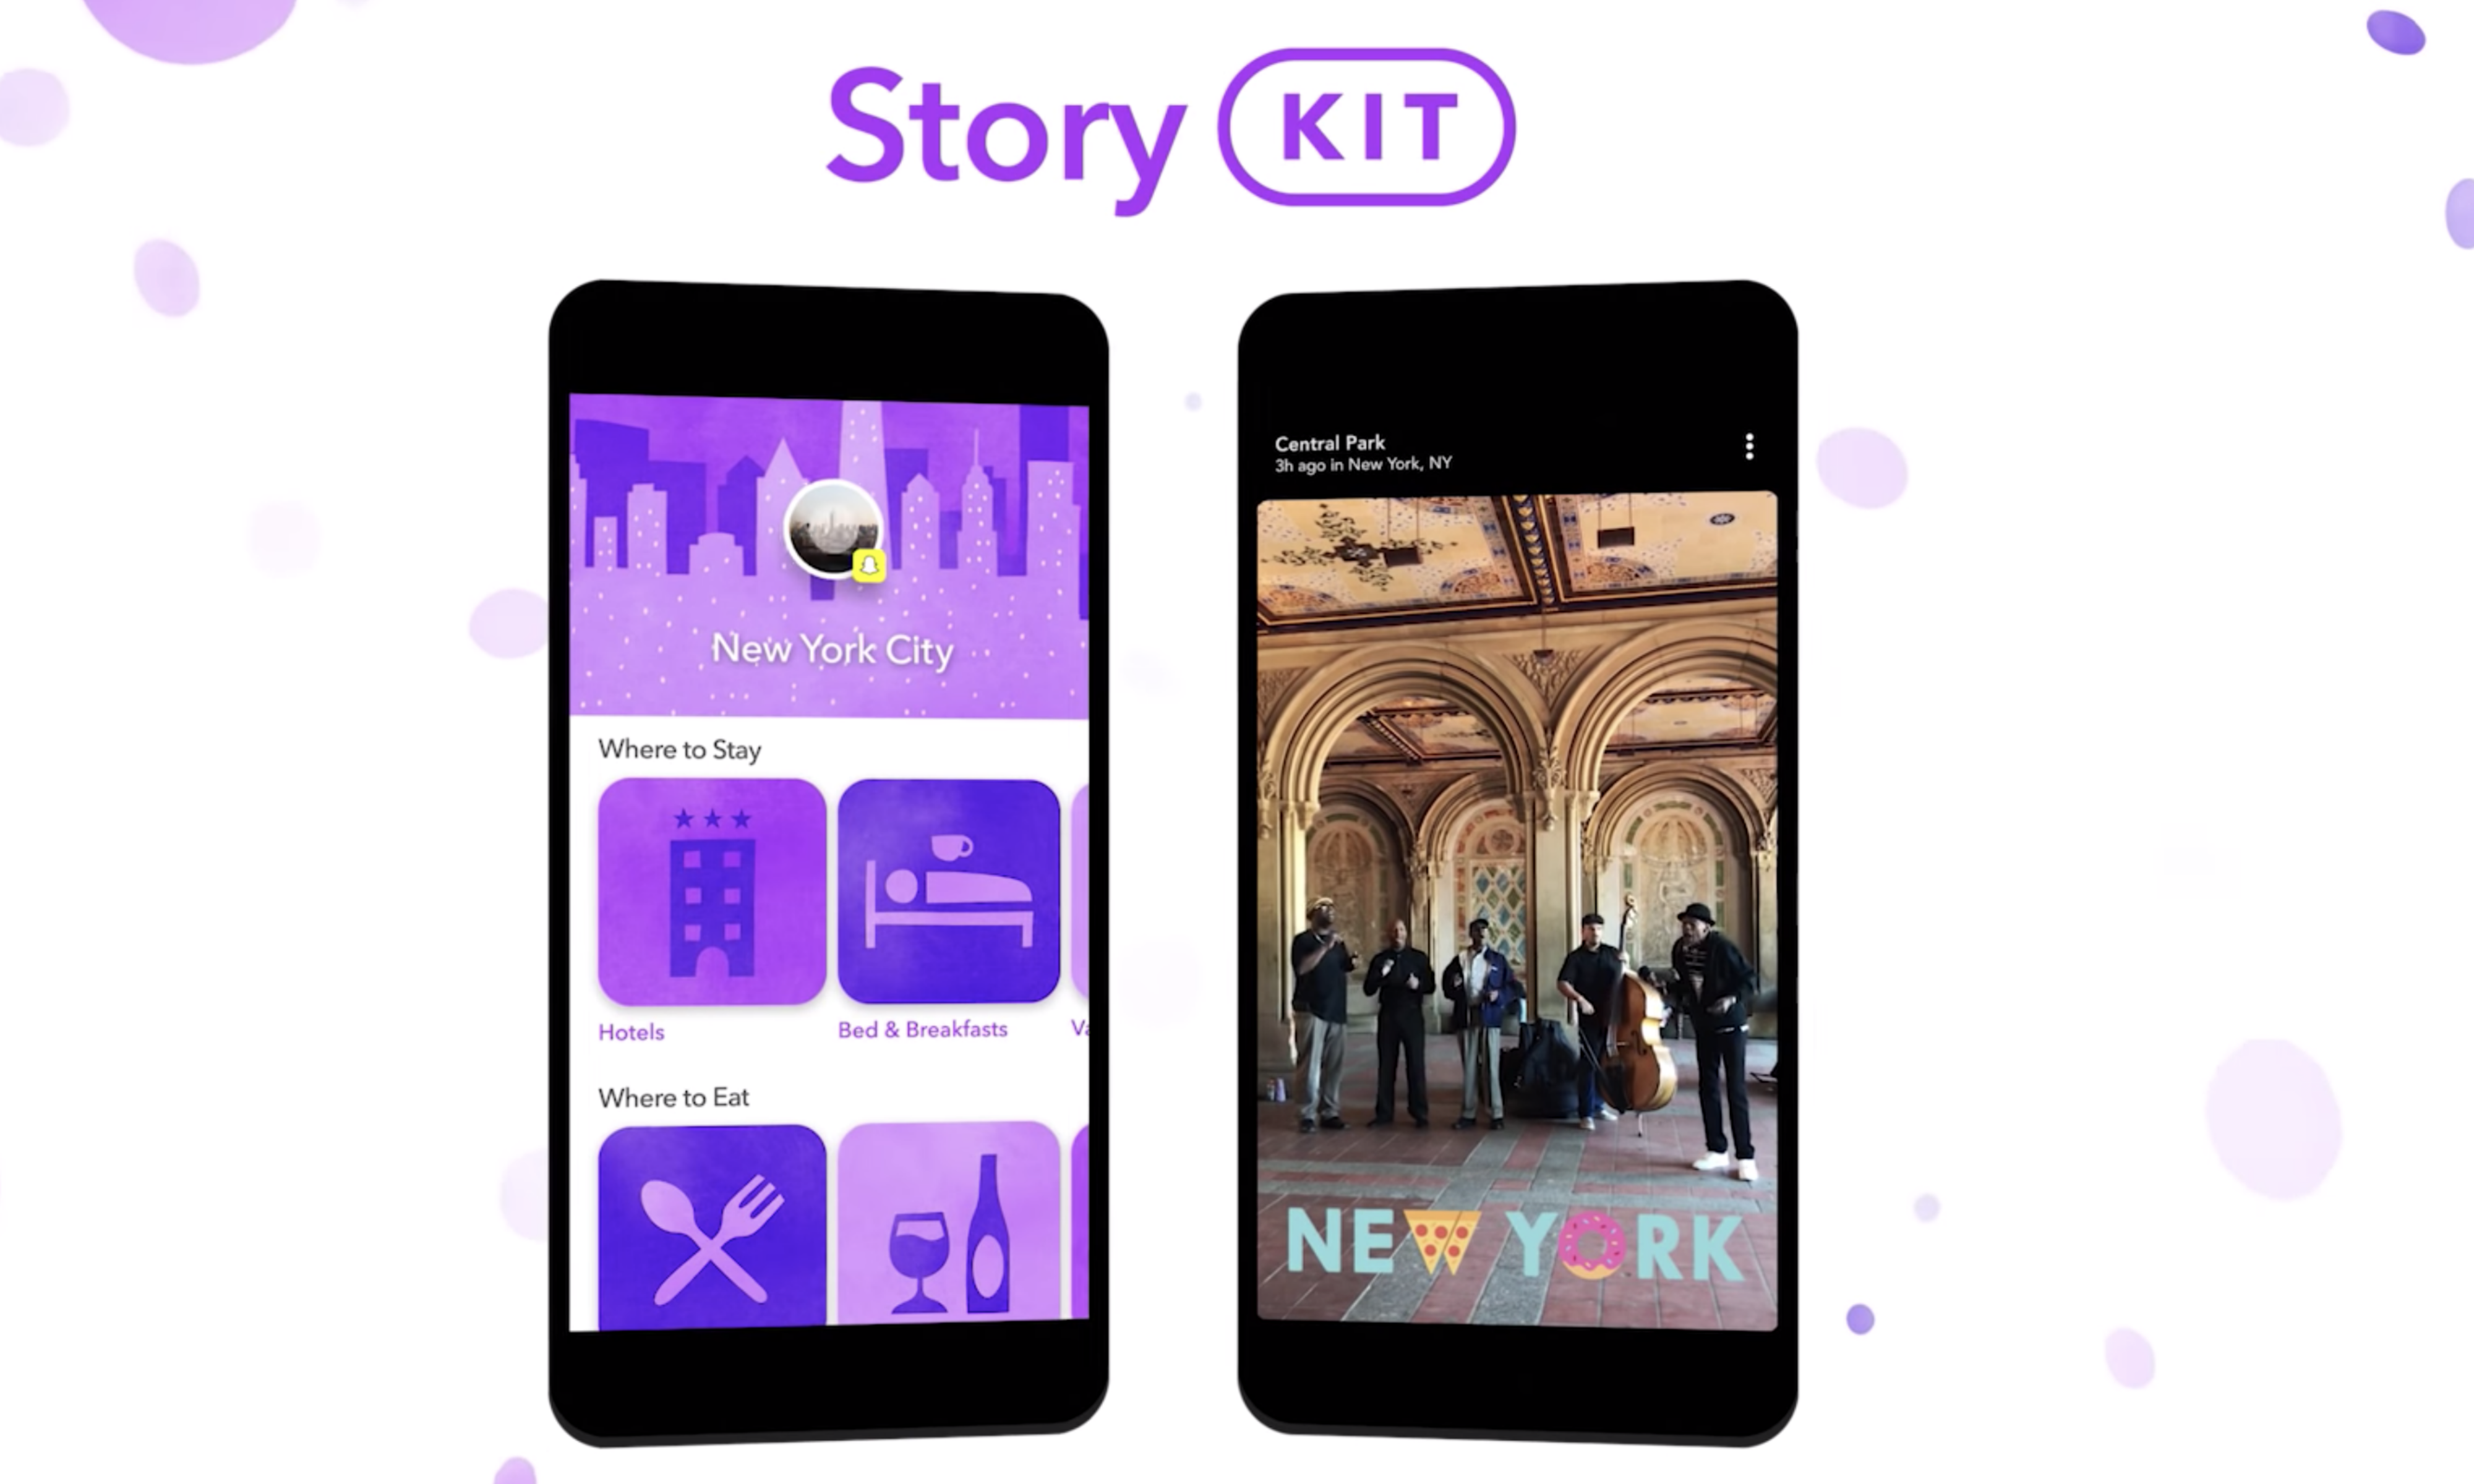 Snap App Stories now available on third party apps